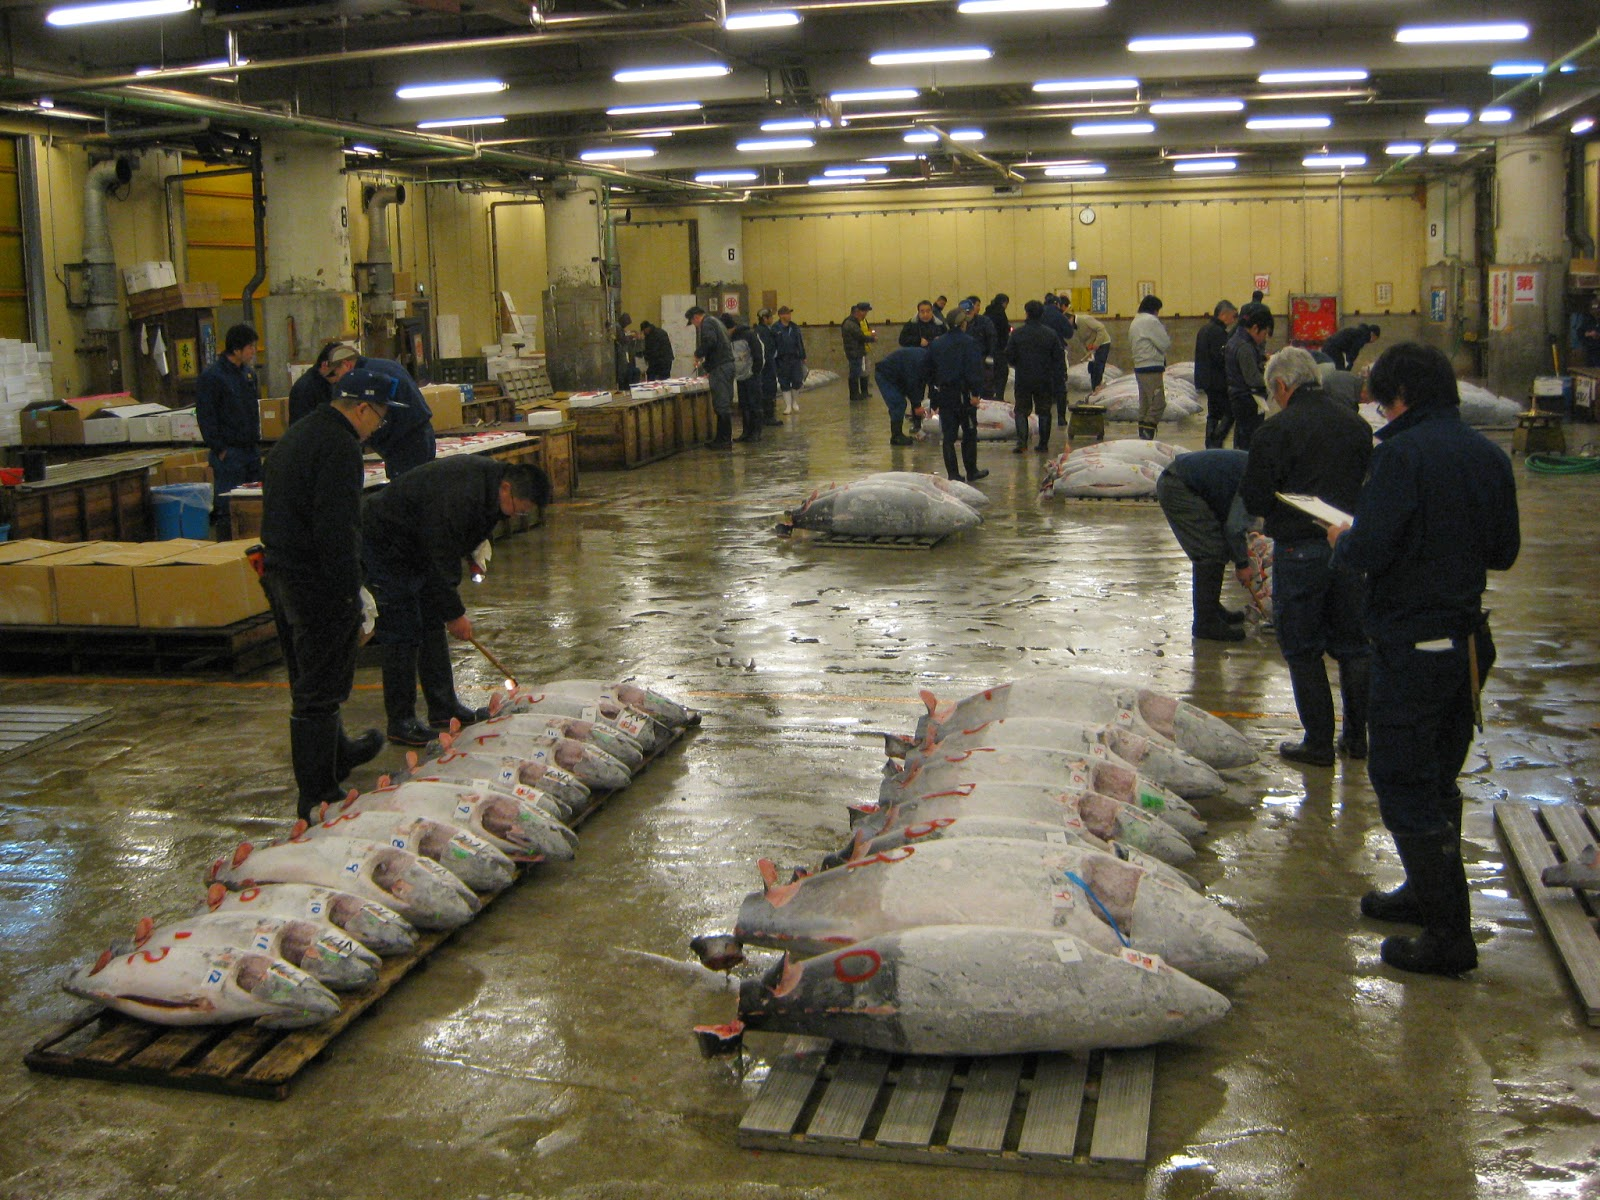 Tokyo - Auction houses mark and estimate the value of each fish